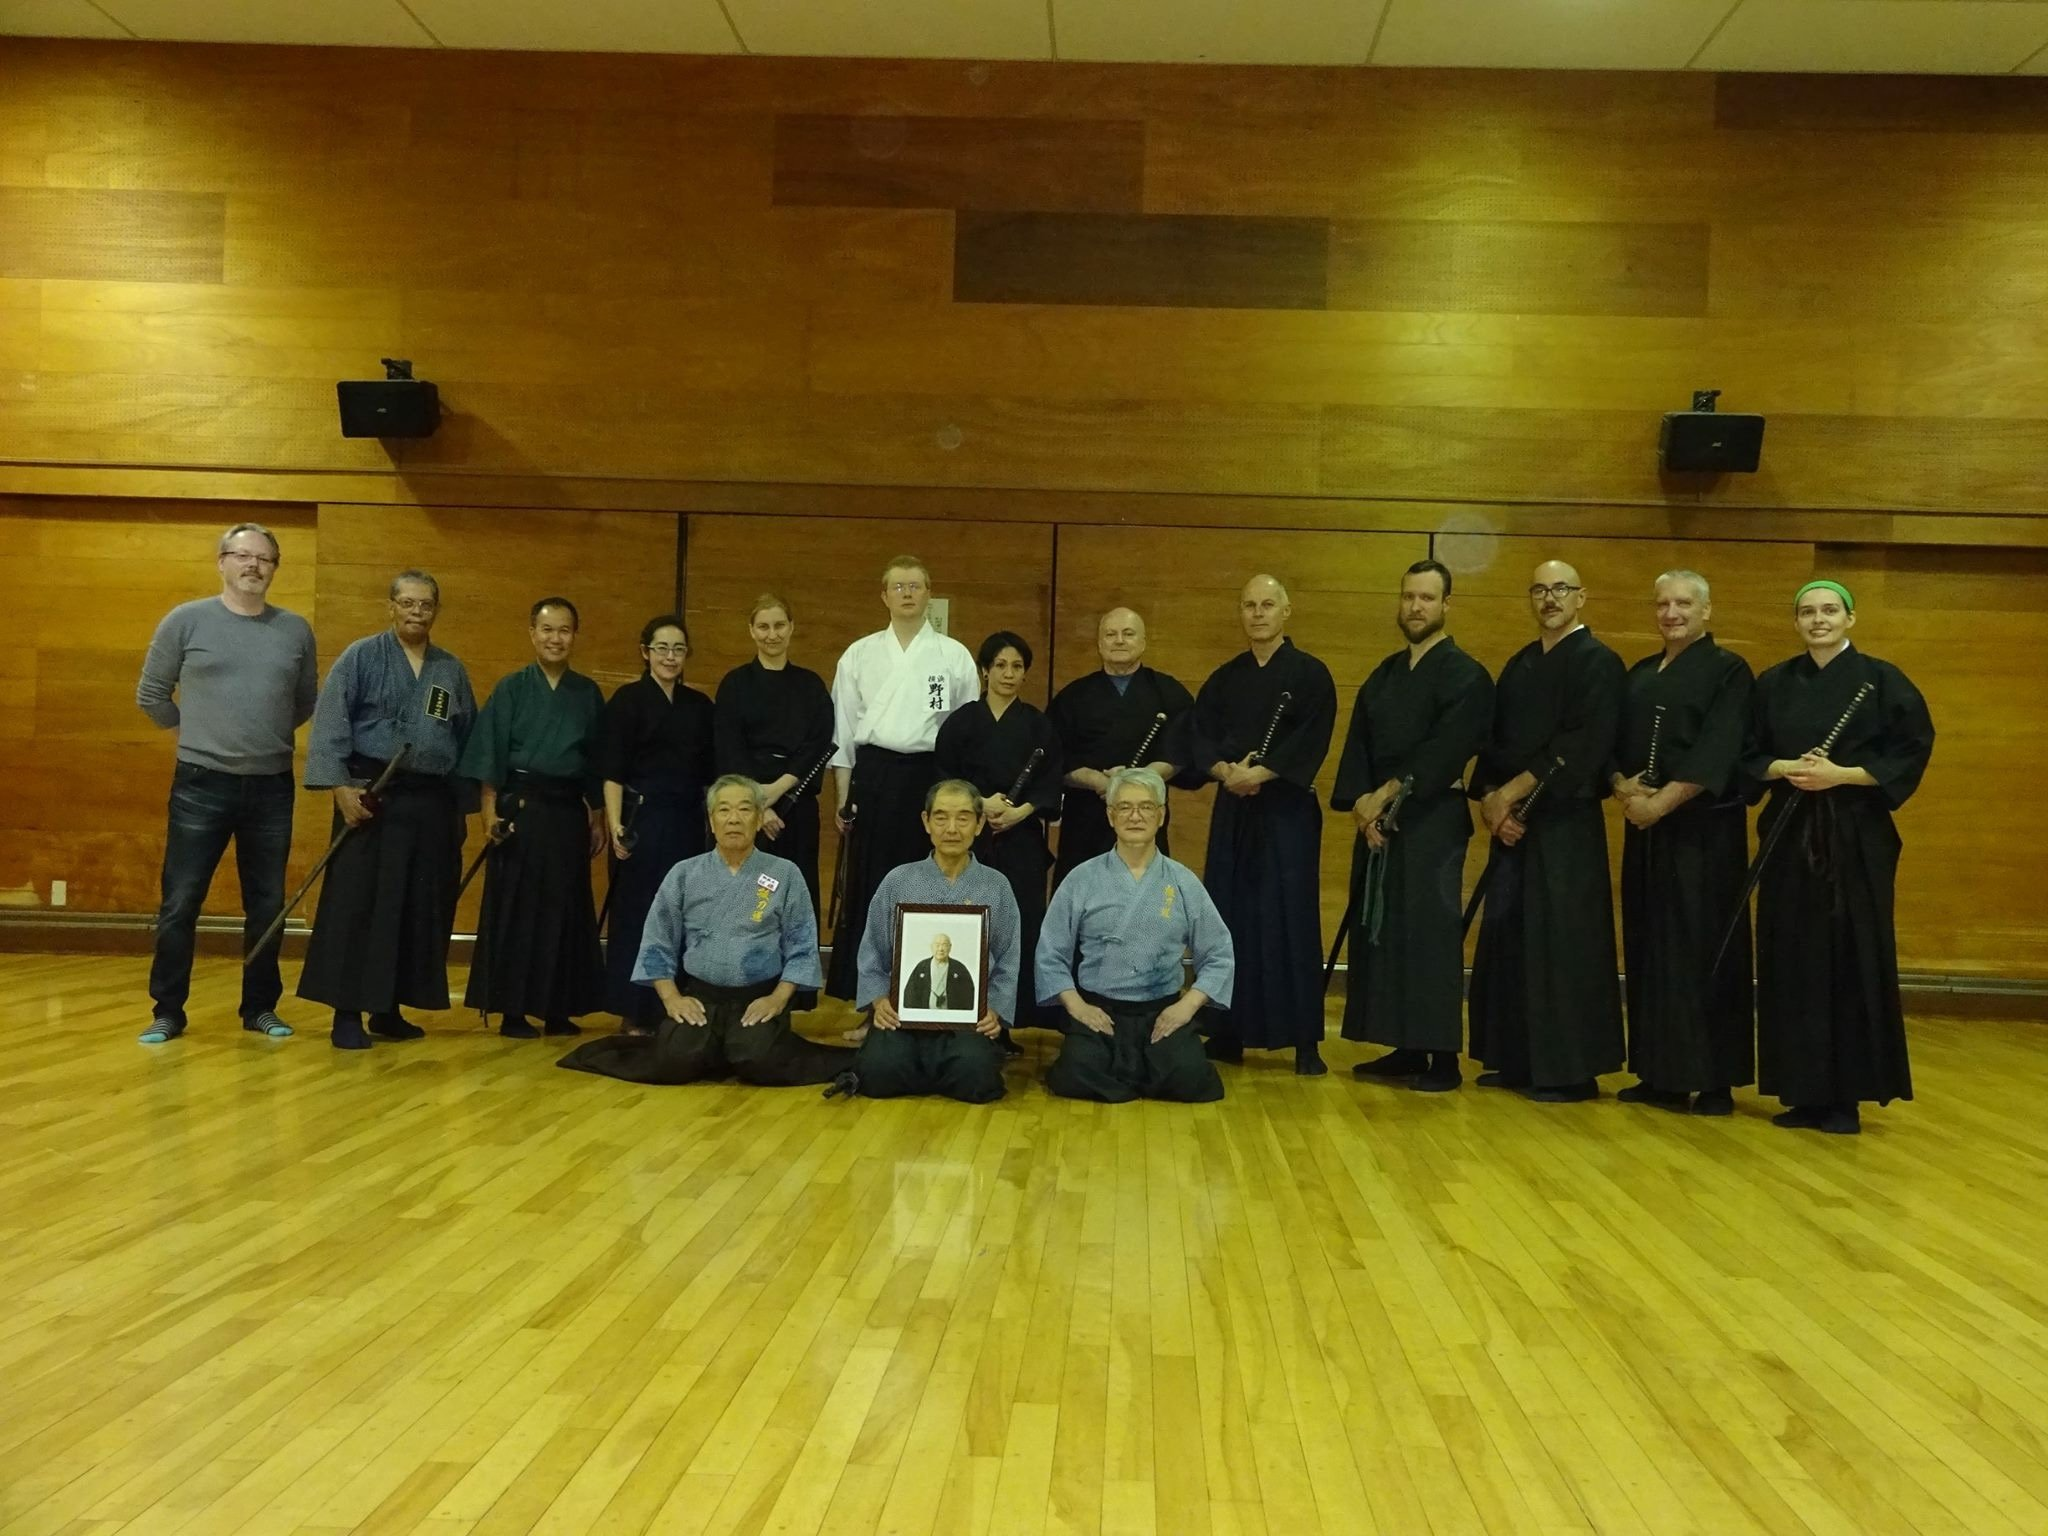 Wednesday Pre-Taikai training group photo. Tex's baggage got lost in the typhoon.